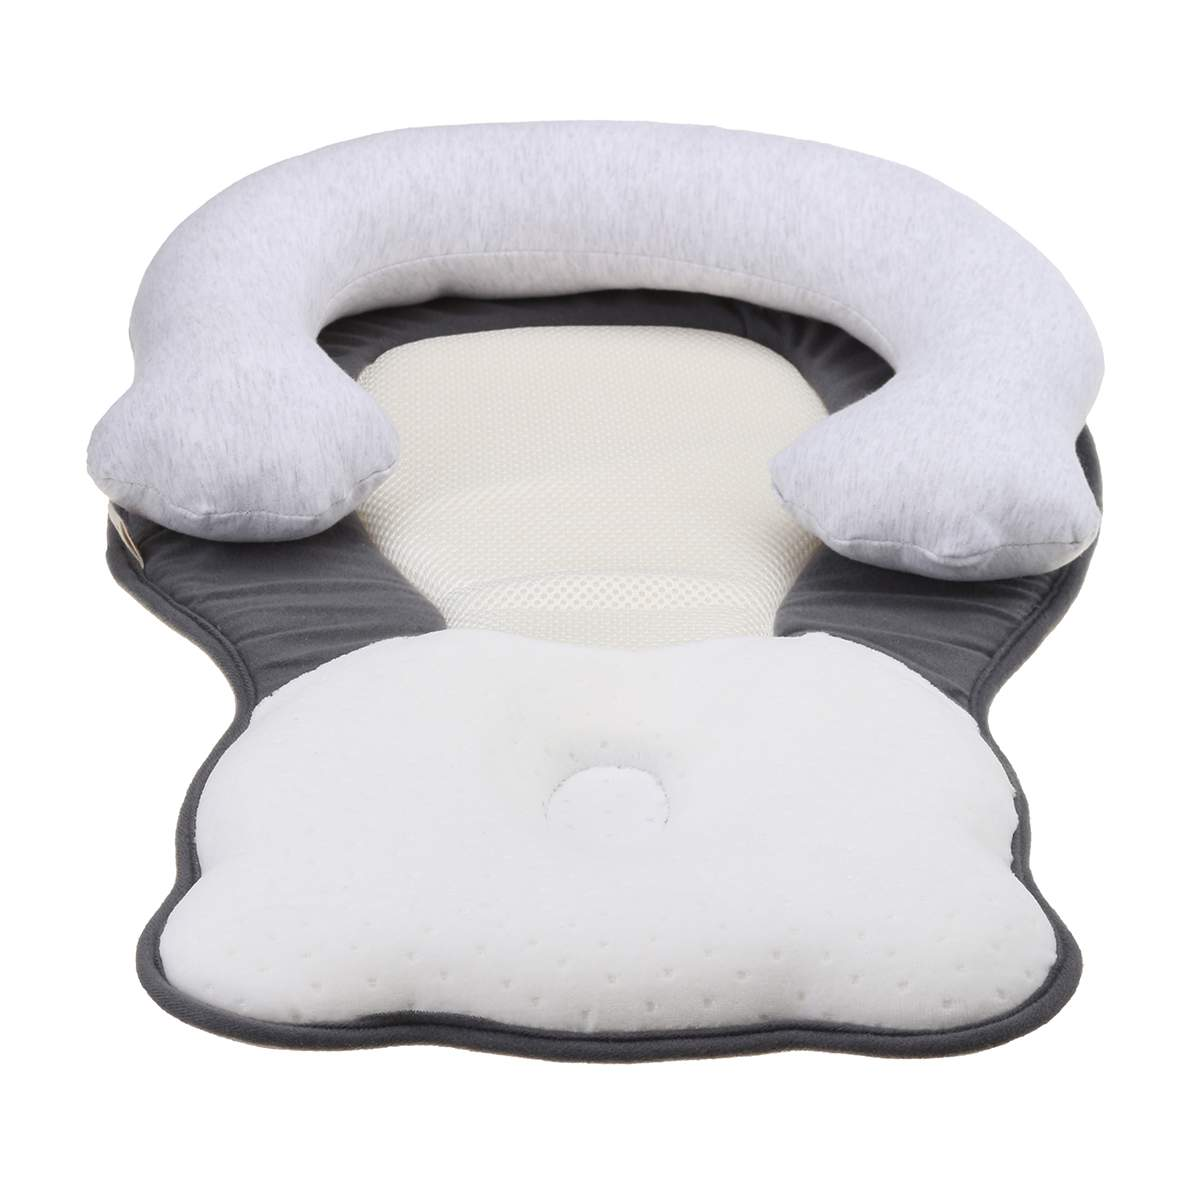 Infant Baby Anti-rollover Soft Cute Pillows Prevent Flat Head Pillow Position US